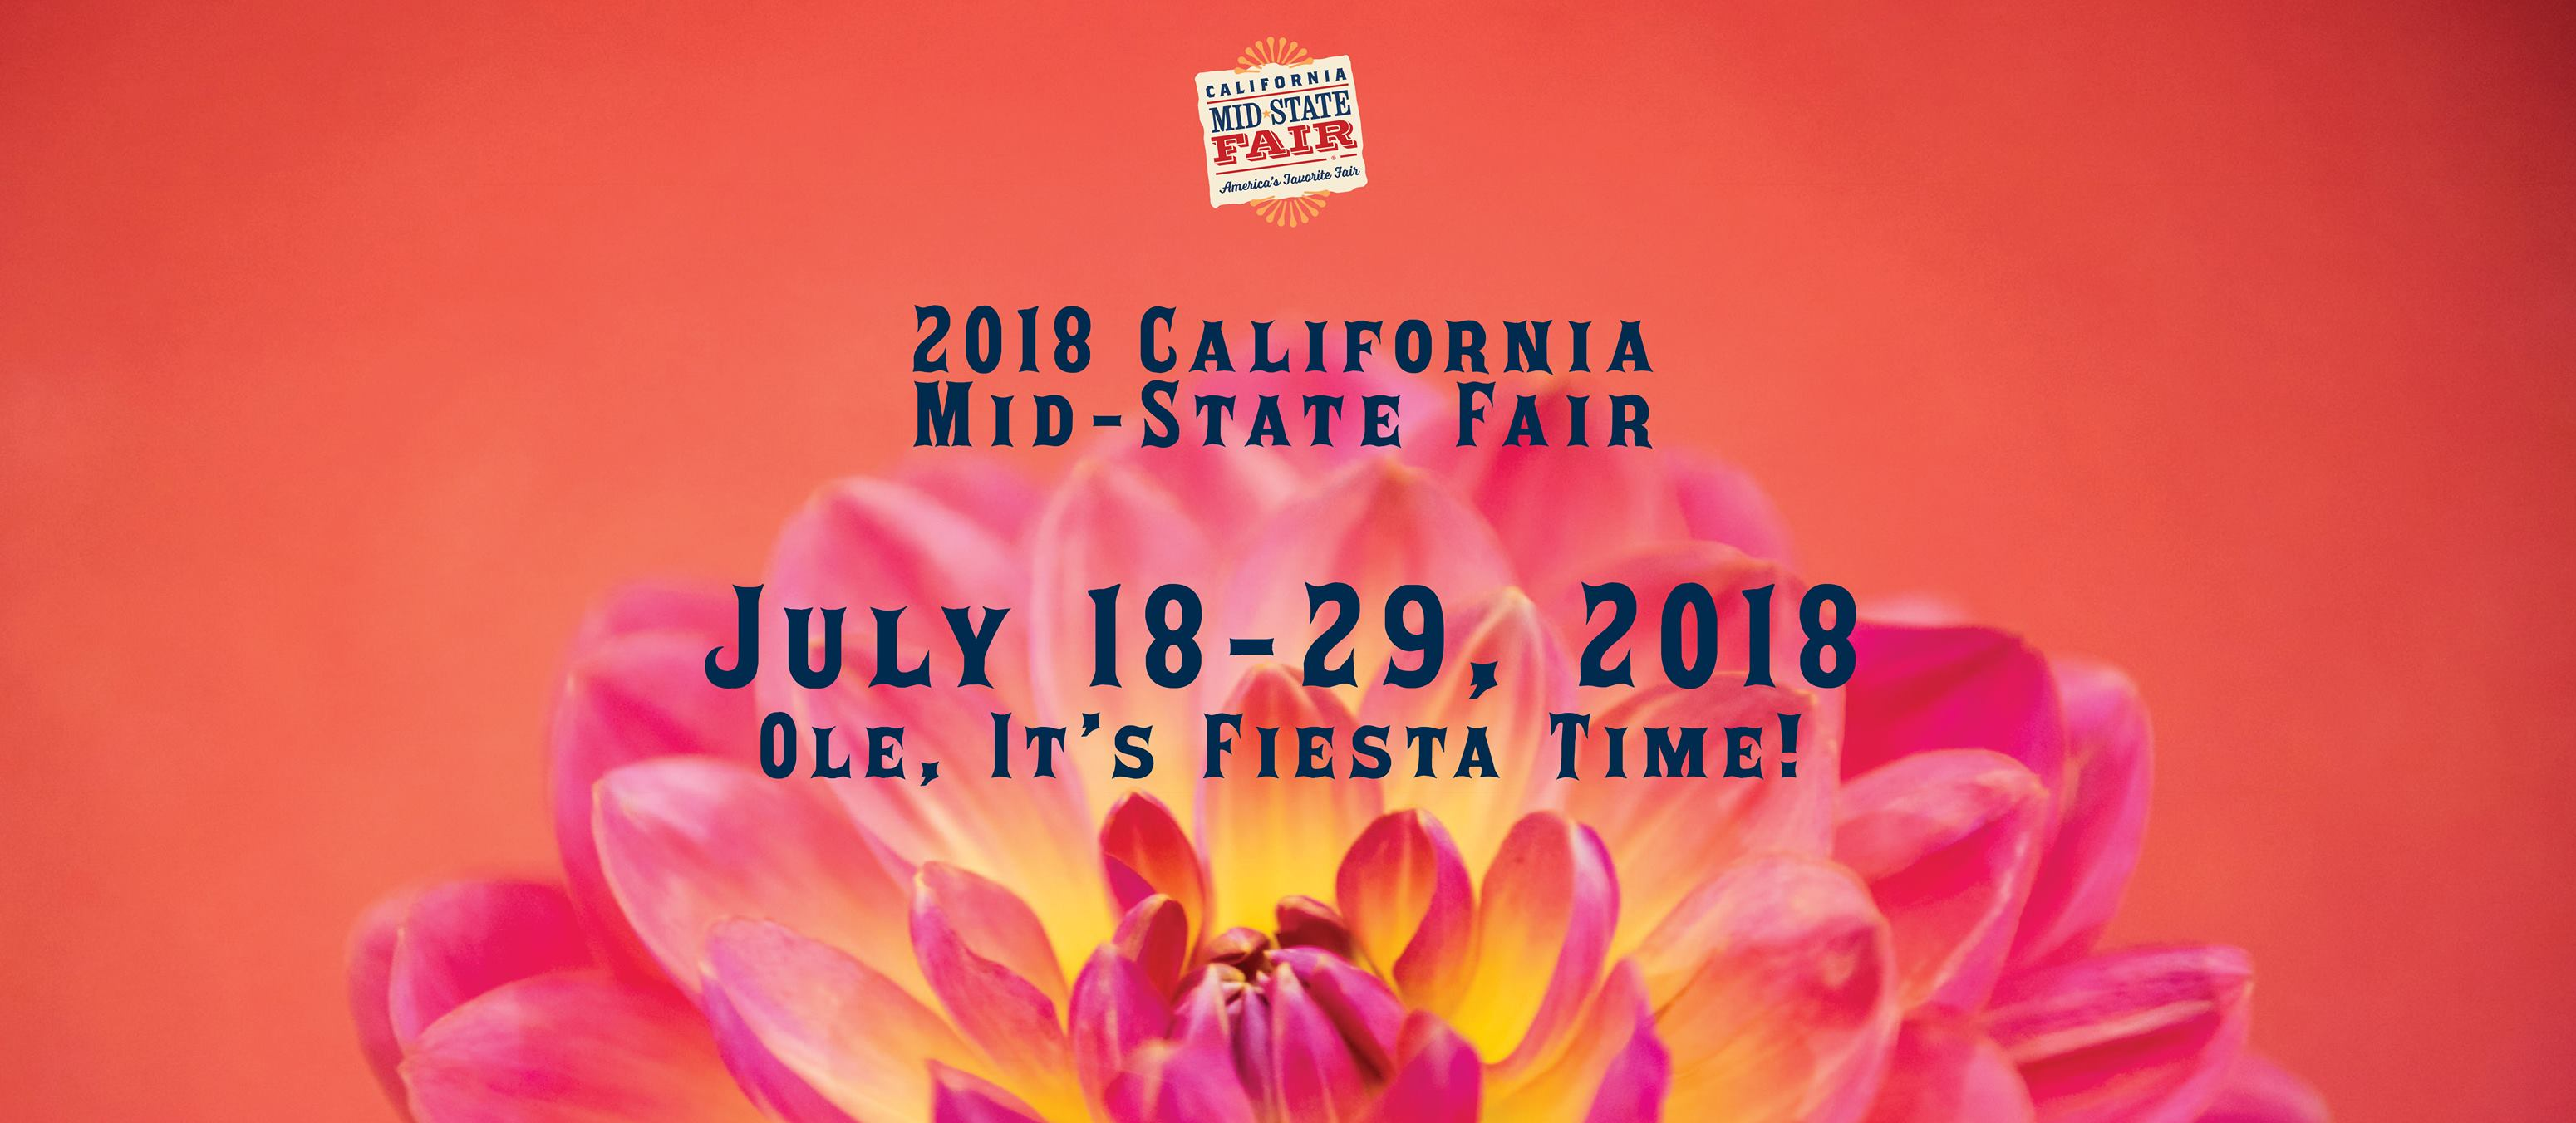 TIM McGRAW & FAITH HILL TO PERFORM AT 2018 CALIFORNIA MID-STATE FAIR